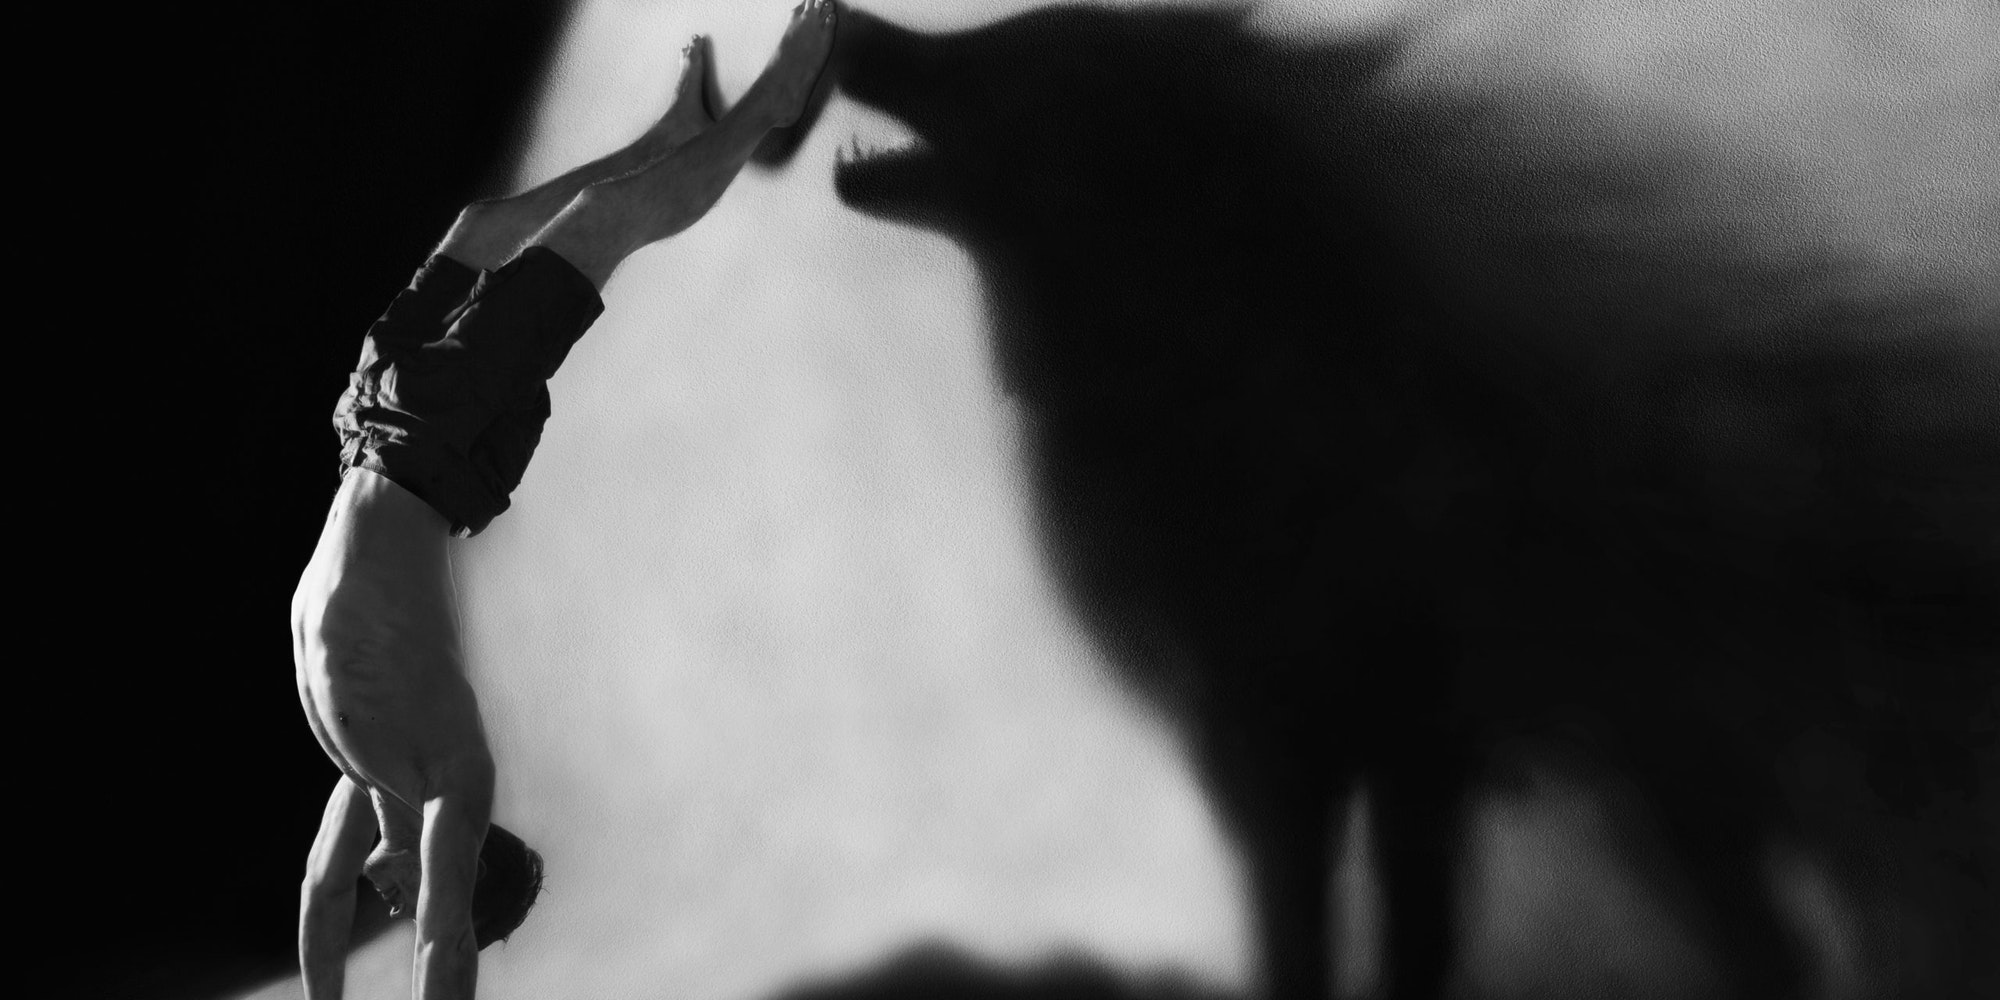 An image of a man doing a handstand with a wolf's shadow on a wall. Wolf dynamics play a key role in the omegaverse and its A/B/O dynamics.